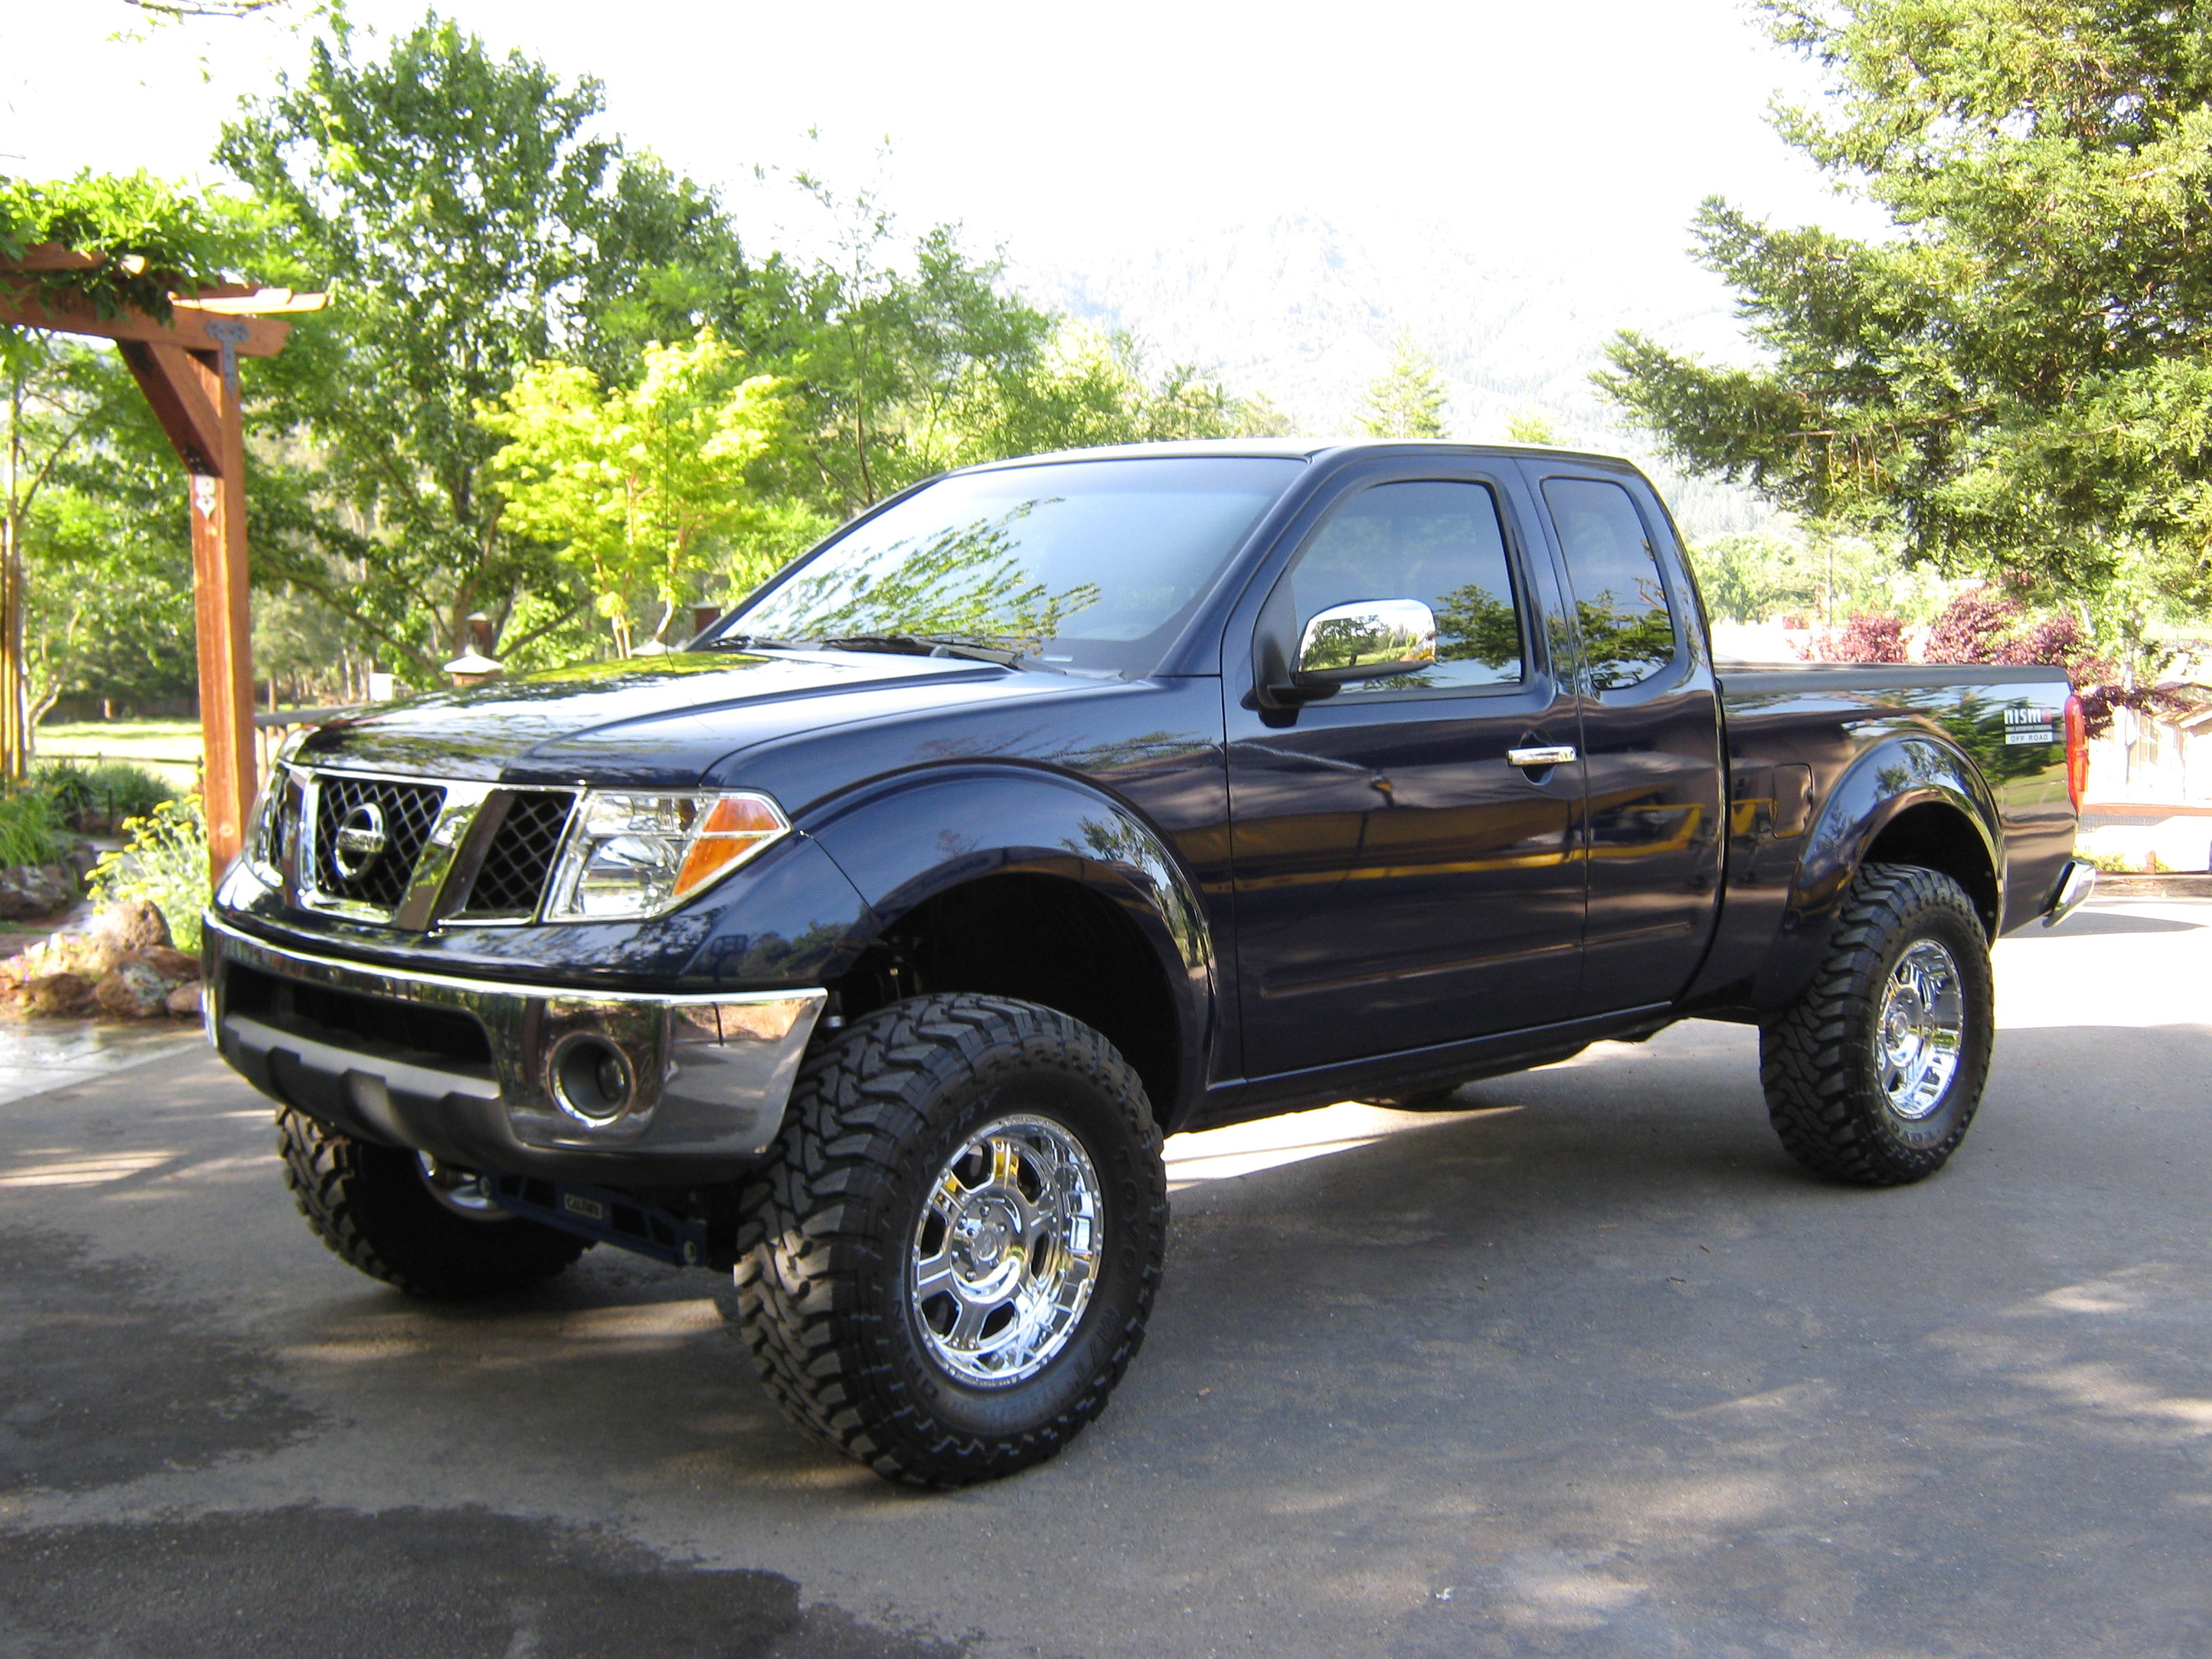 vodkatrix 2007 nissan frontier regular cab specs photos modification info at cardomain. Black Bedroom Furniture Sets. Home Design Ideas